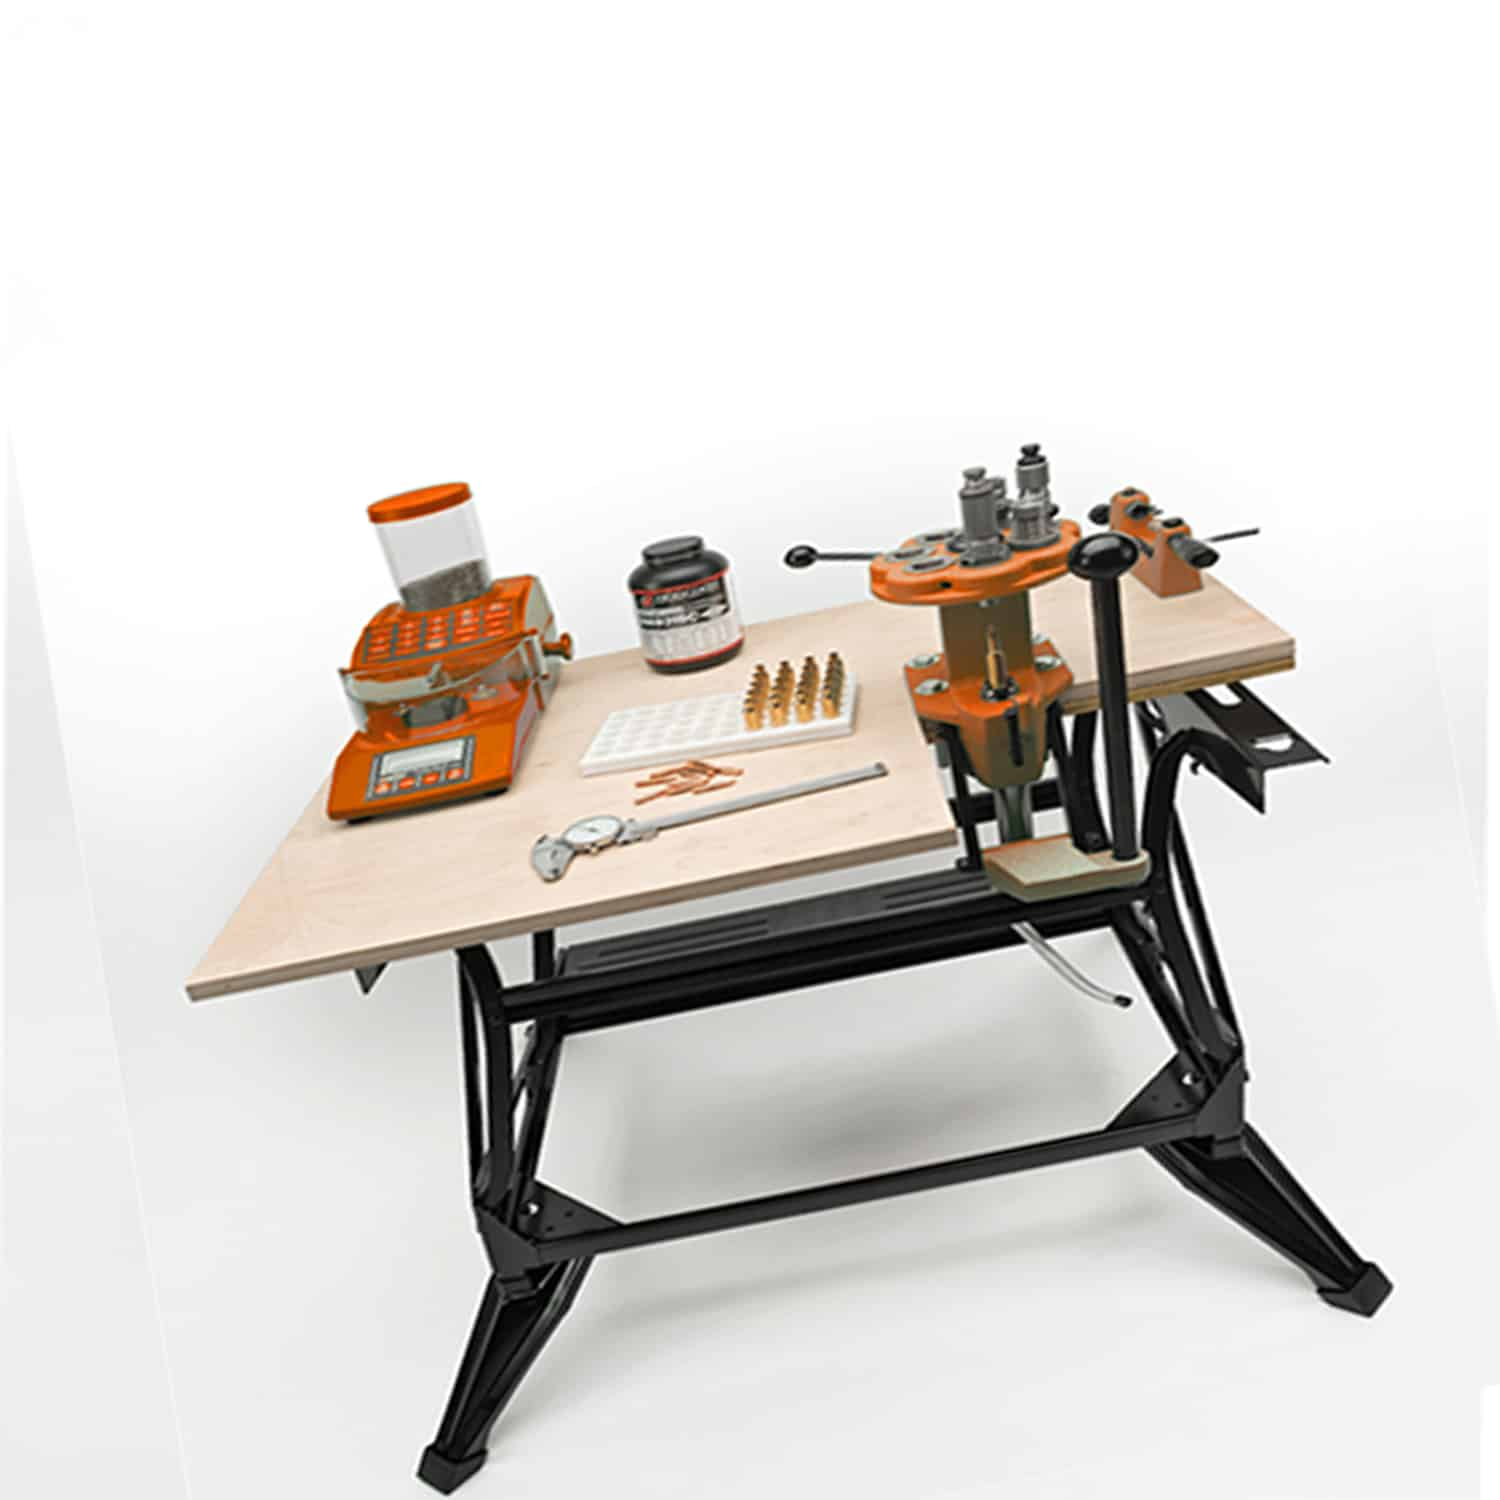 Best Reloading Bench & Stand Reviews 2020